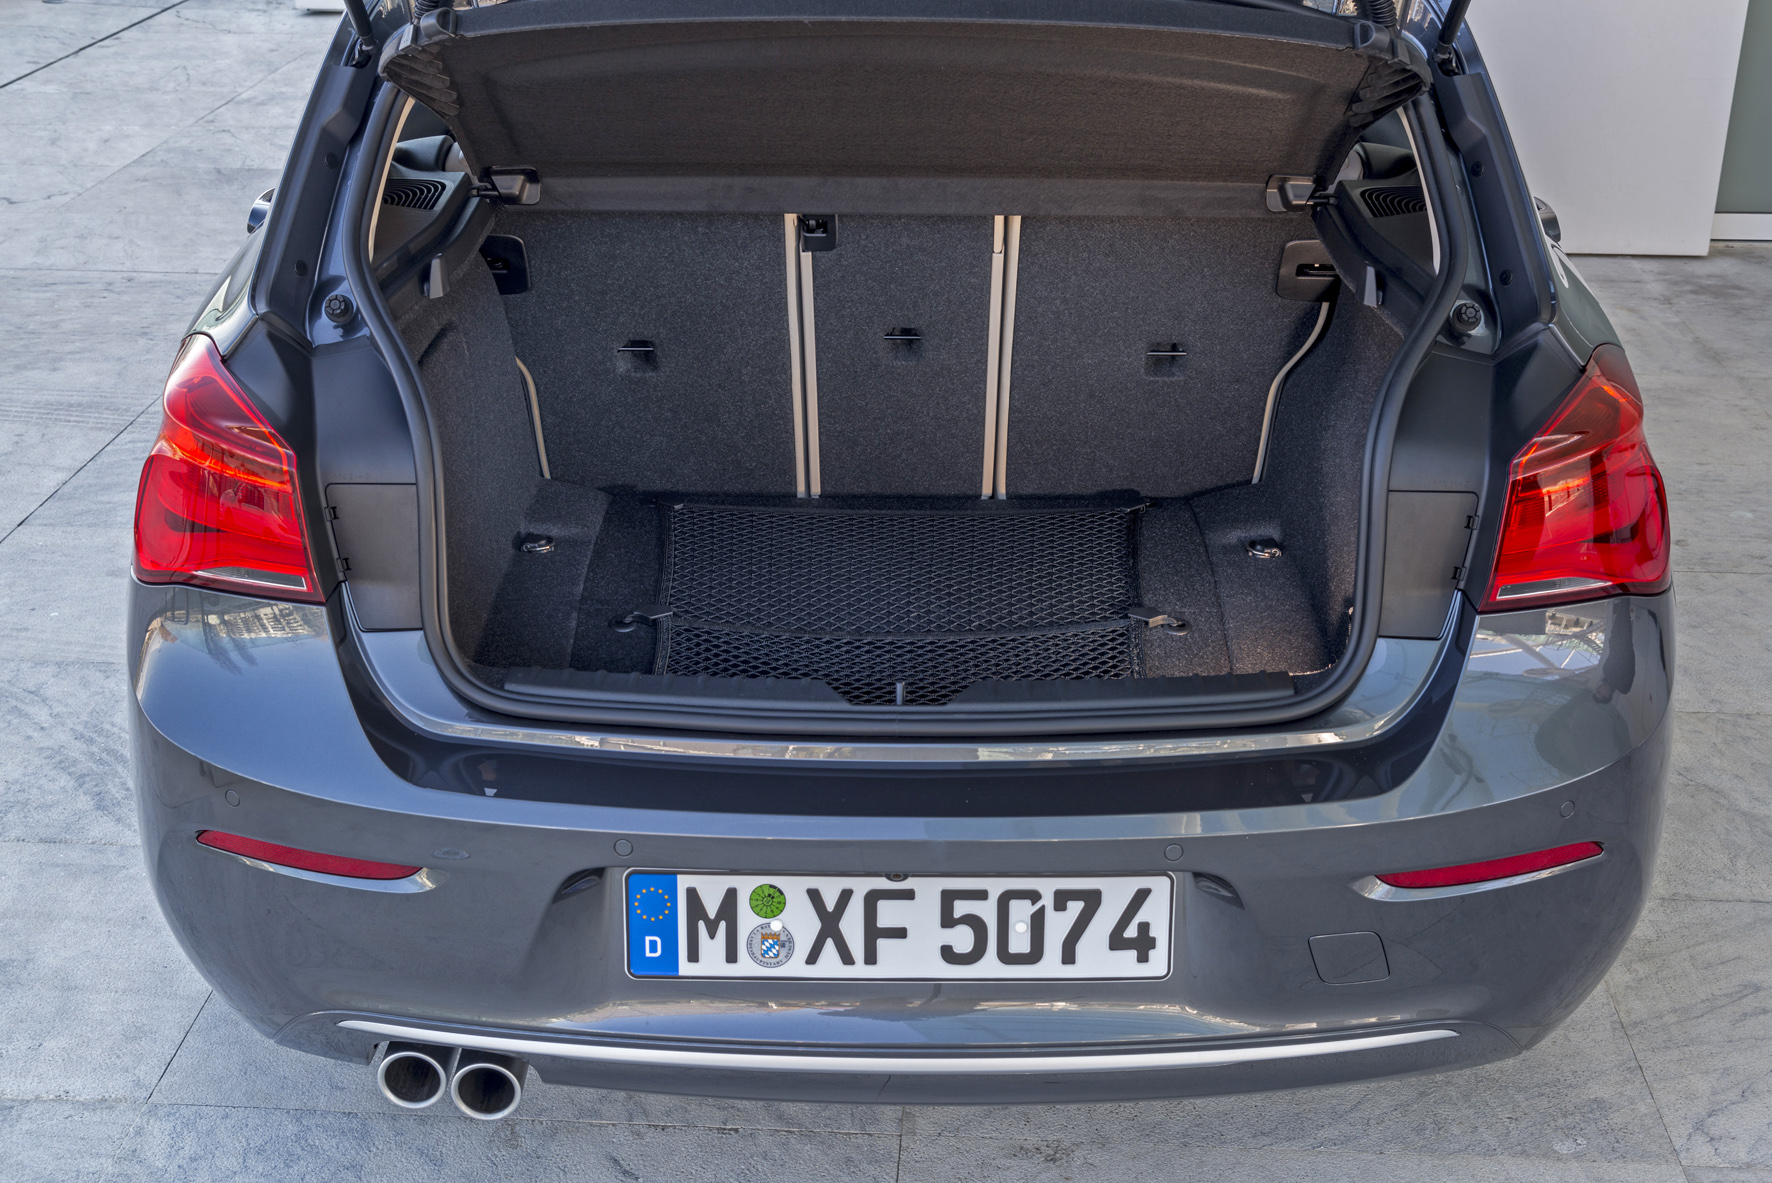 Open boot of a BMW 1 Series